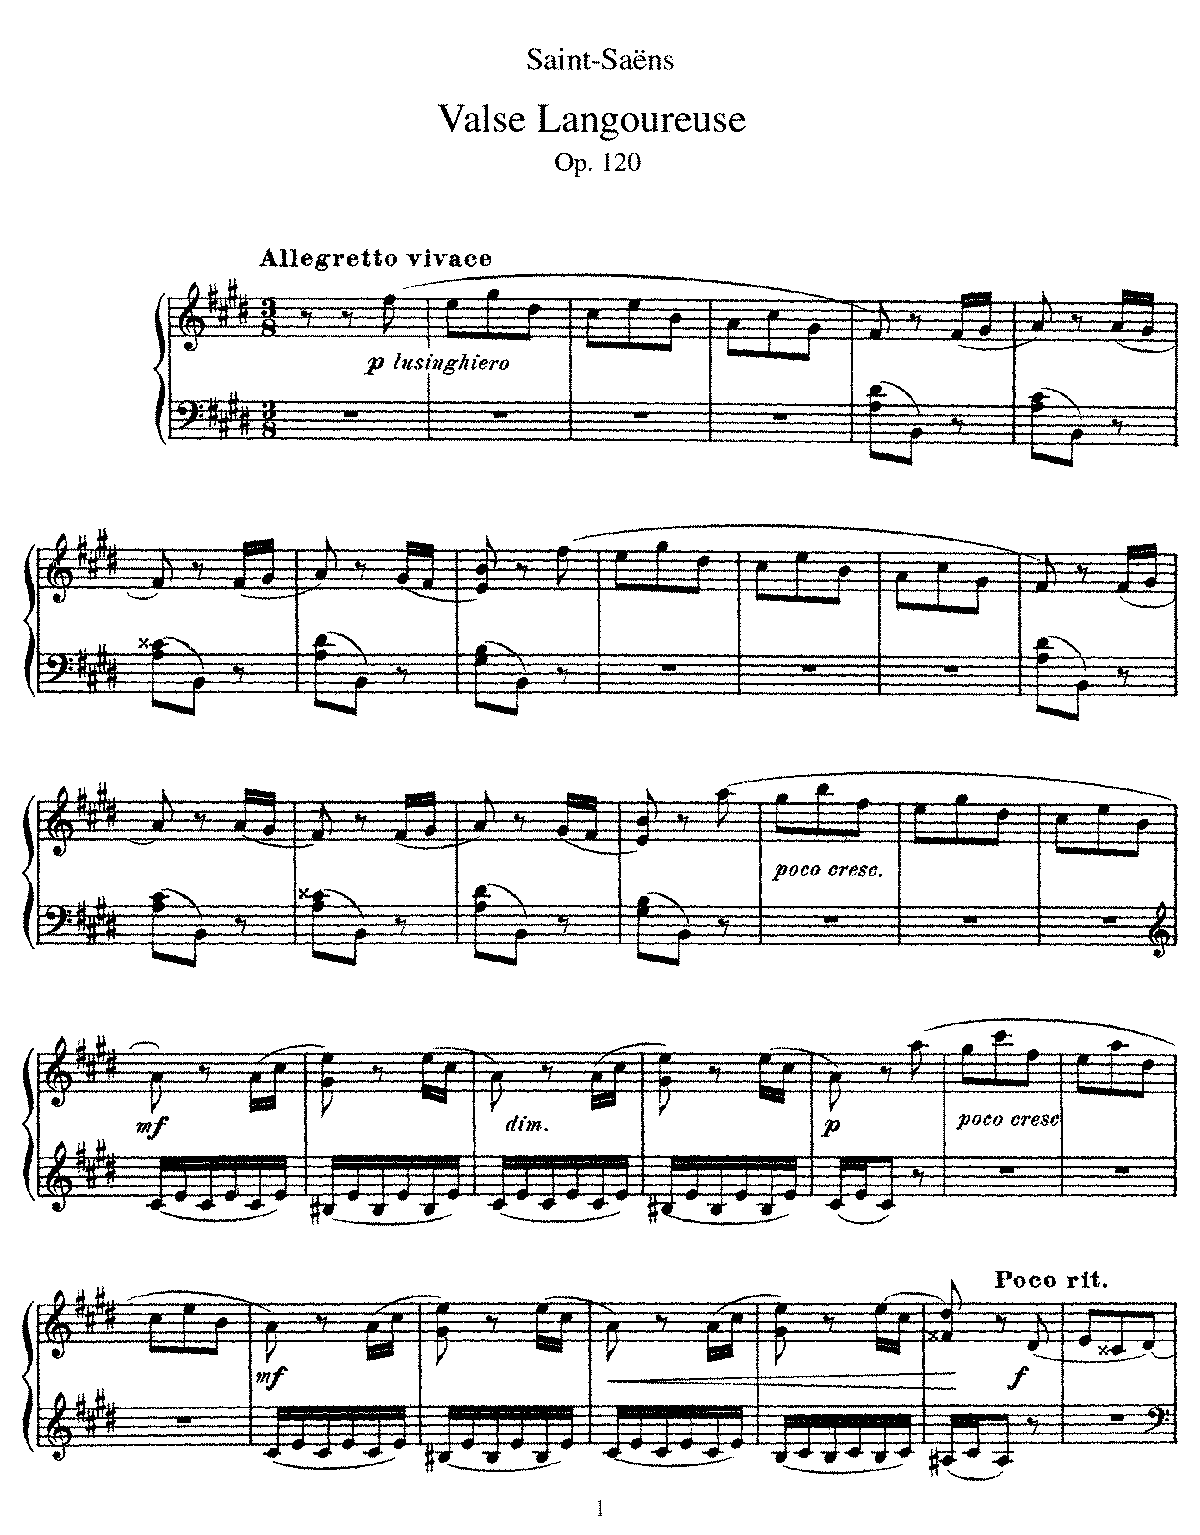 Saint-Saëns - Valse Langoureuse.pdf